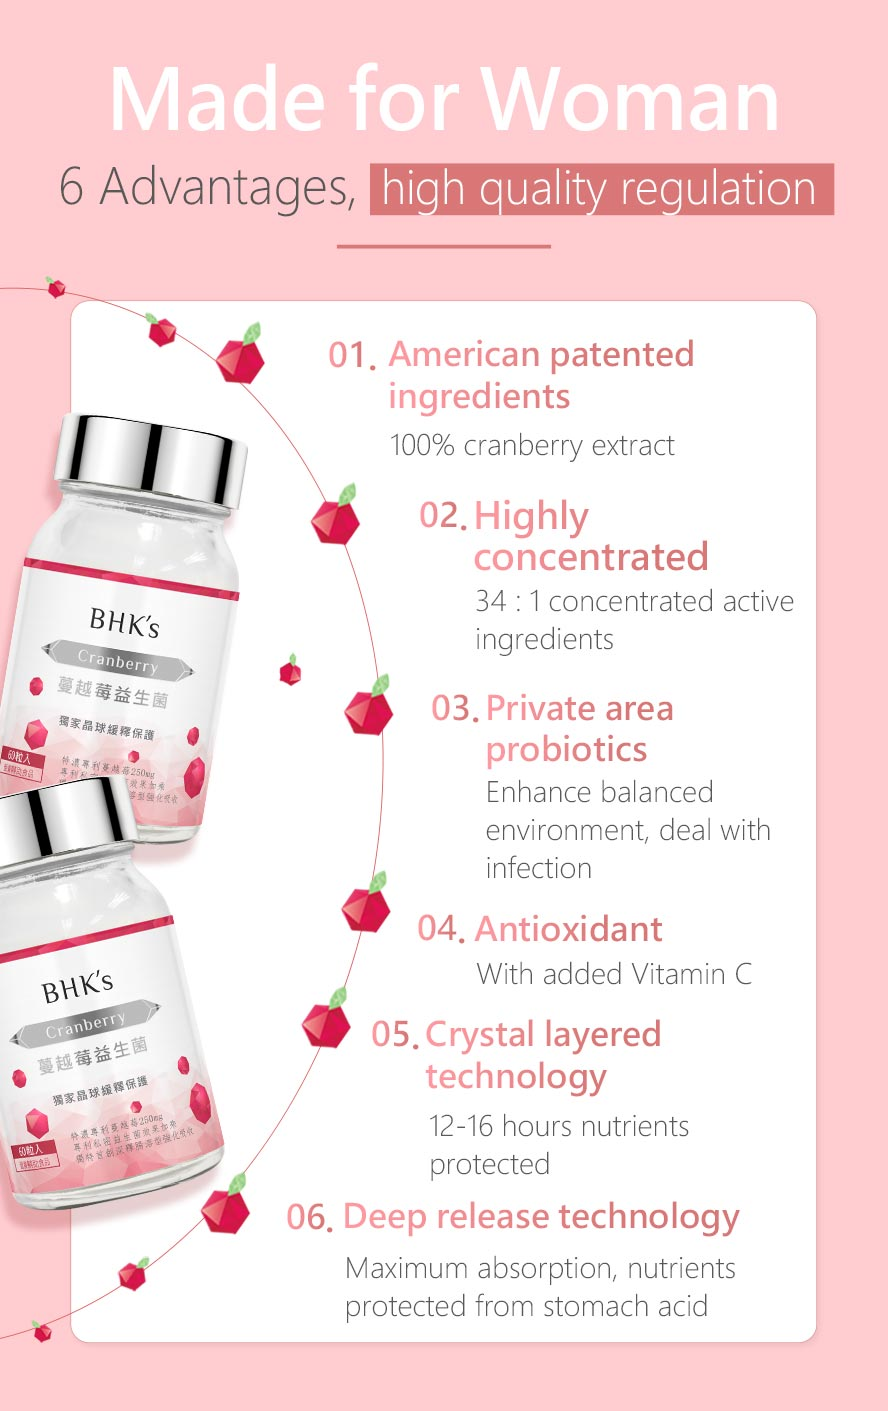 BHK's cranberry is highly recommended by all the female consumer